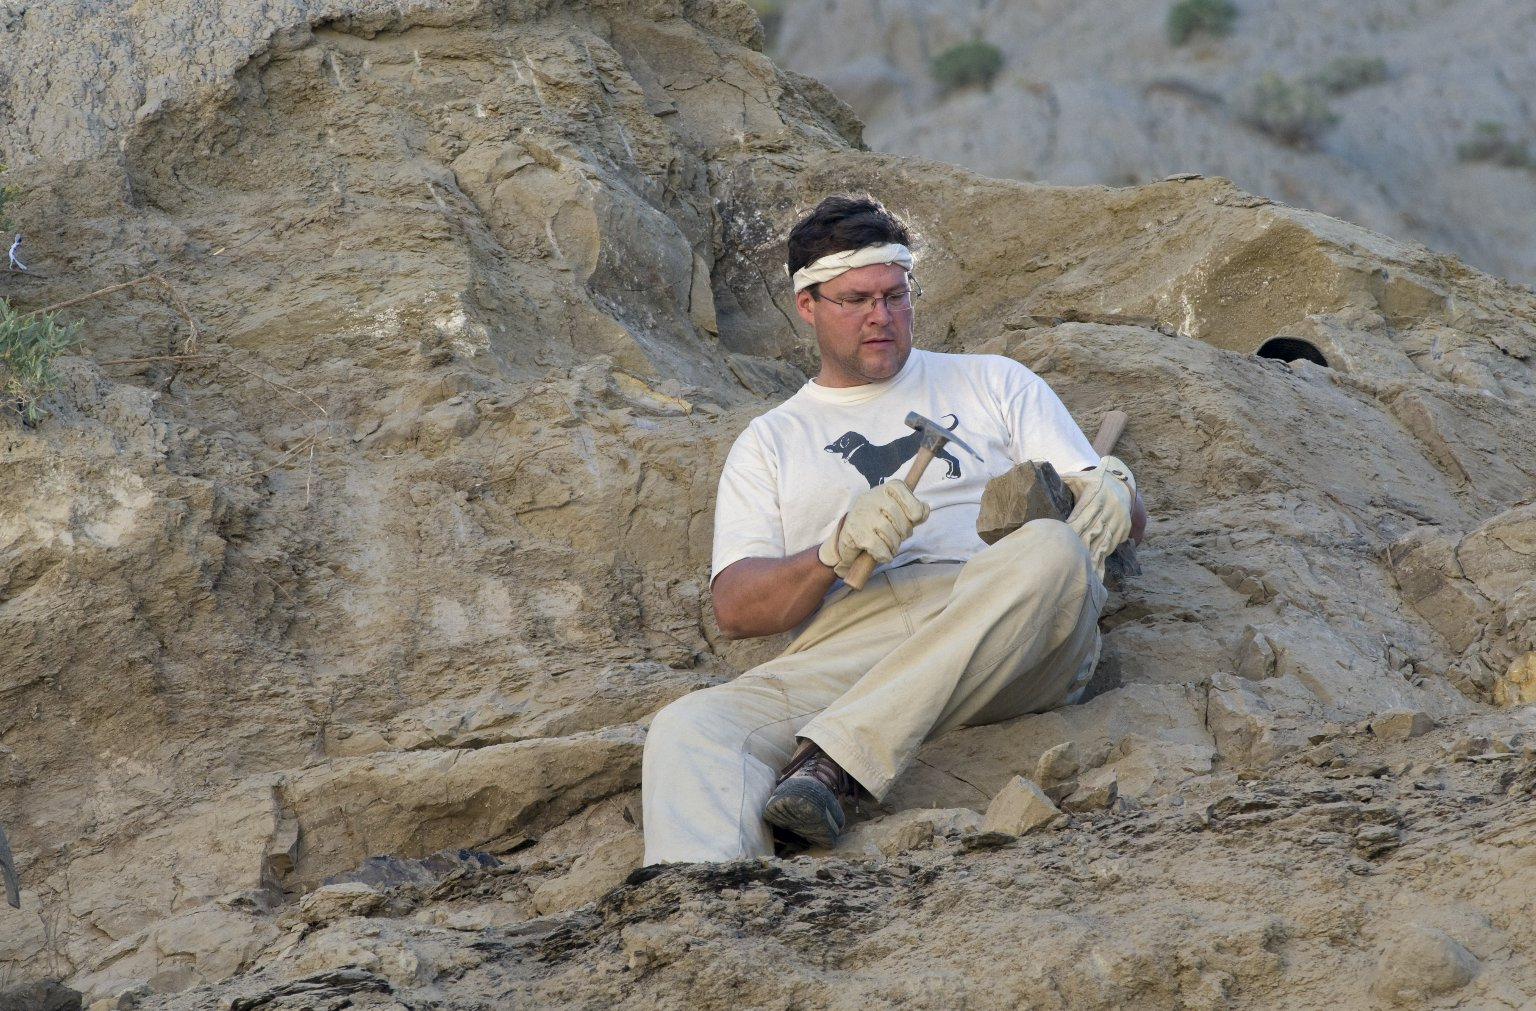 Dr. Kirk Johnson, DMNS Vice President of Research and Collections and Chief Curator, uses a rock hammer to reveal a leaf specimen on the Kaiparowits Plateau.